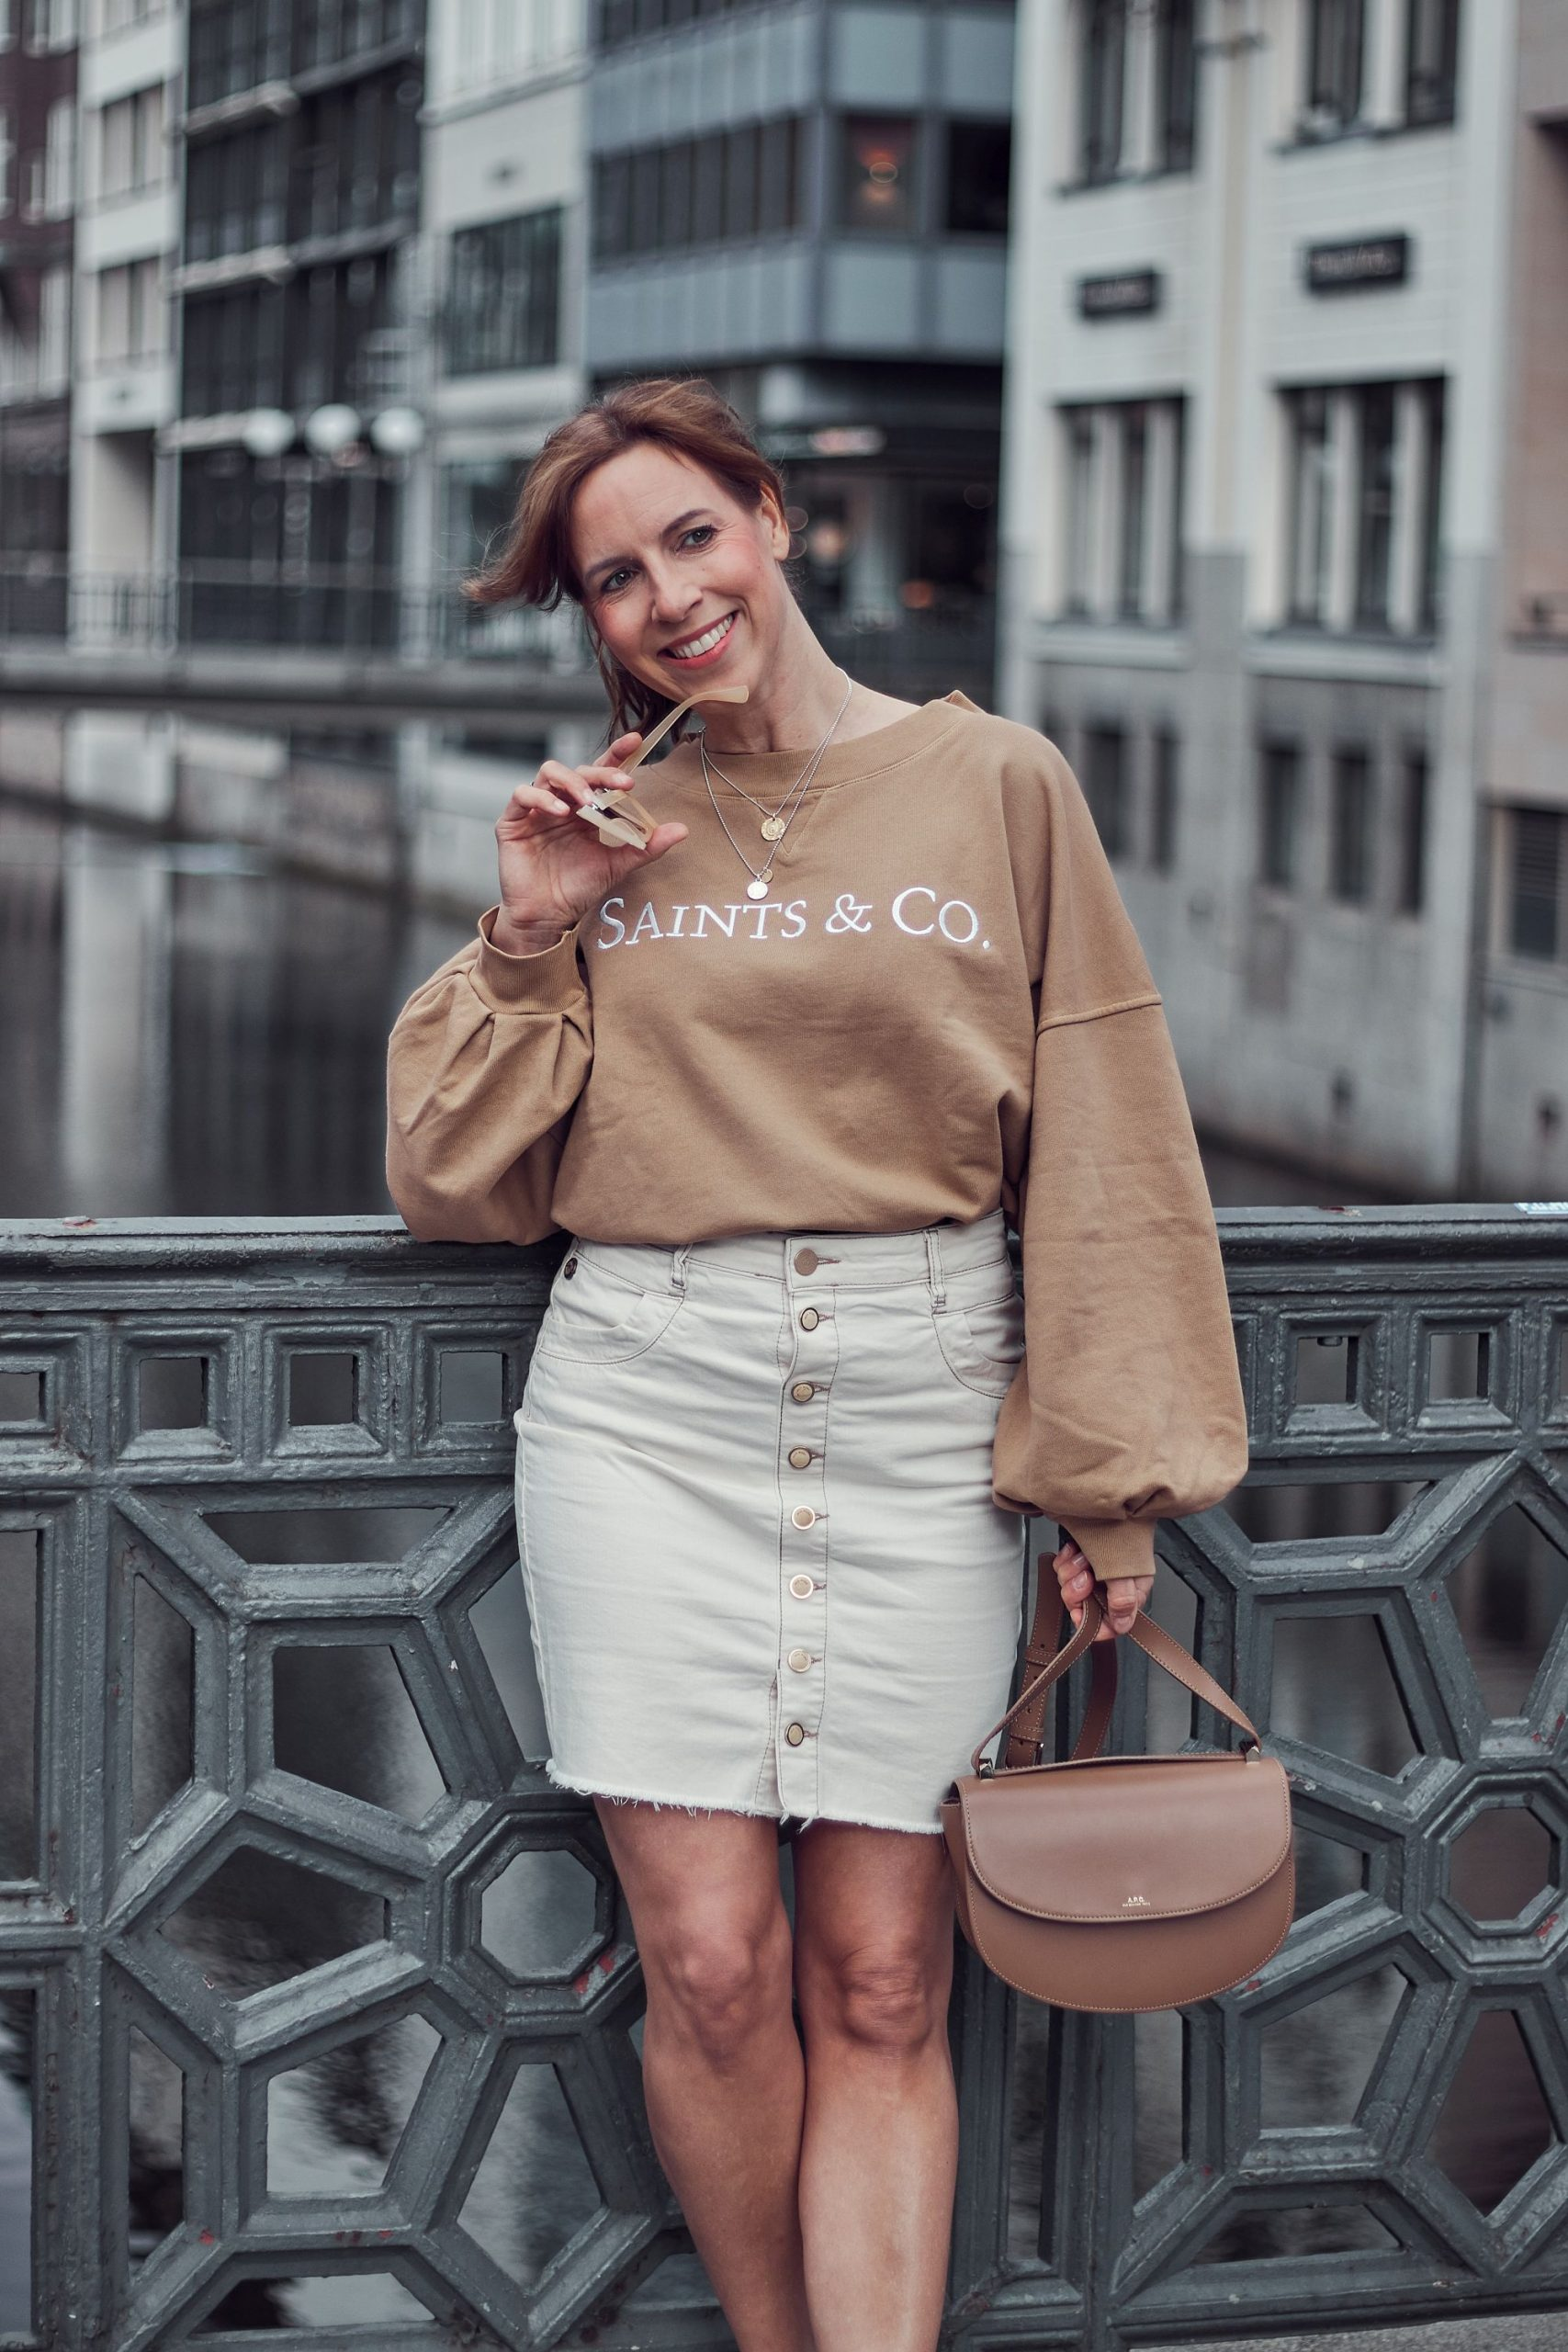 Saints and Co grace Sweater zu cremefarbenem Denim Skirt mit Knopfleiste und Sneakern in weiß.